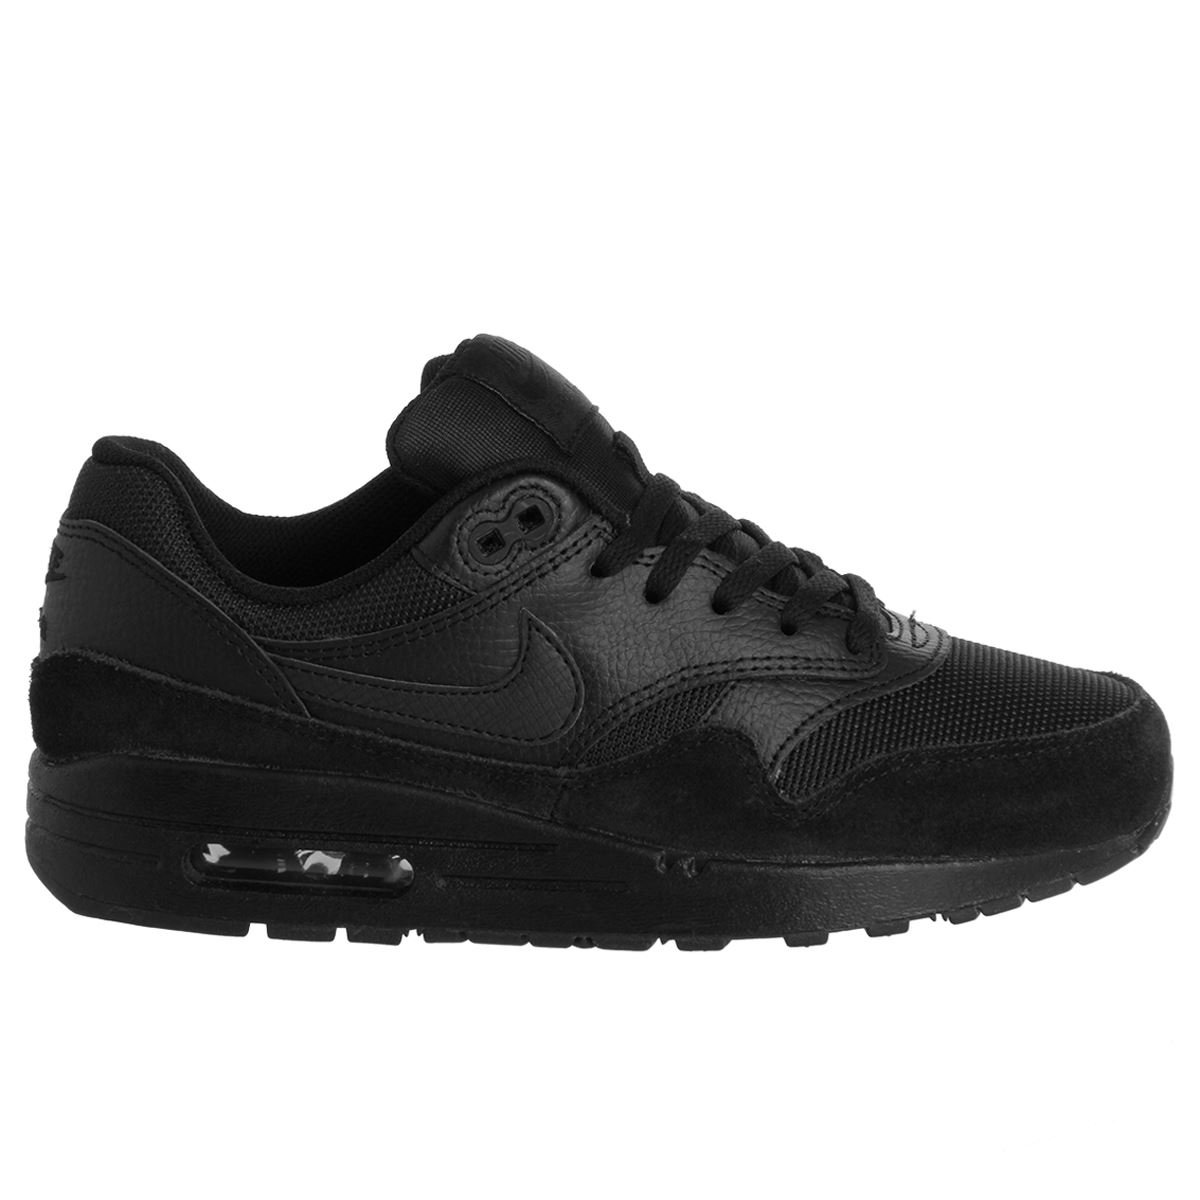 free shipping 7f512 45d87 Nike Air Max 1 (gs), Unisex Kids' Low-Top Trainers: Amazon.co.uk: Shoes &  Bags